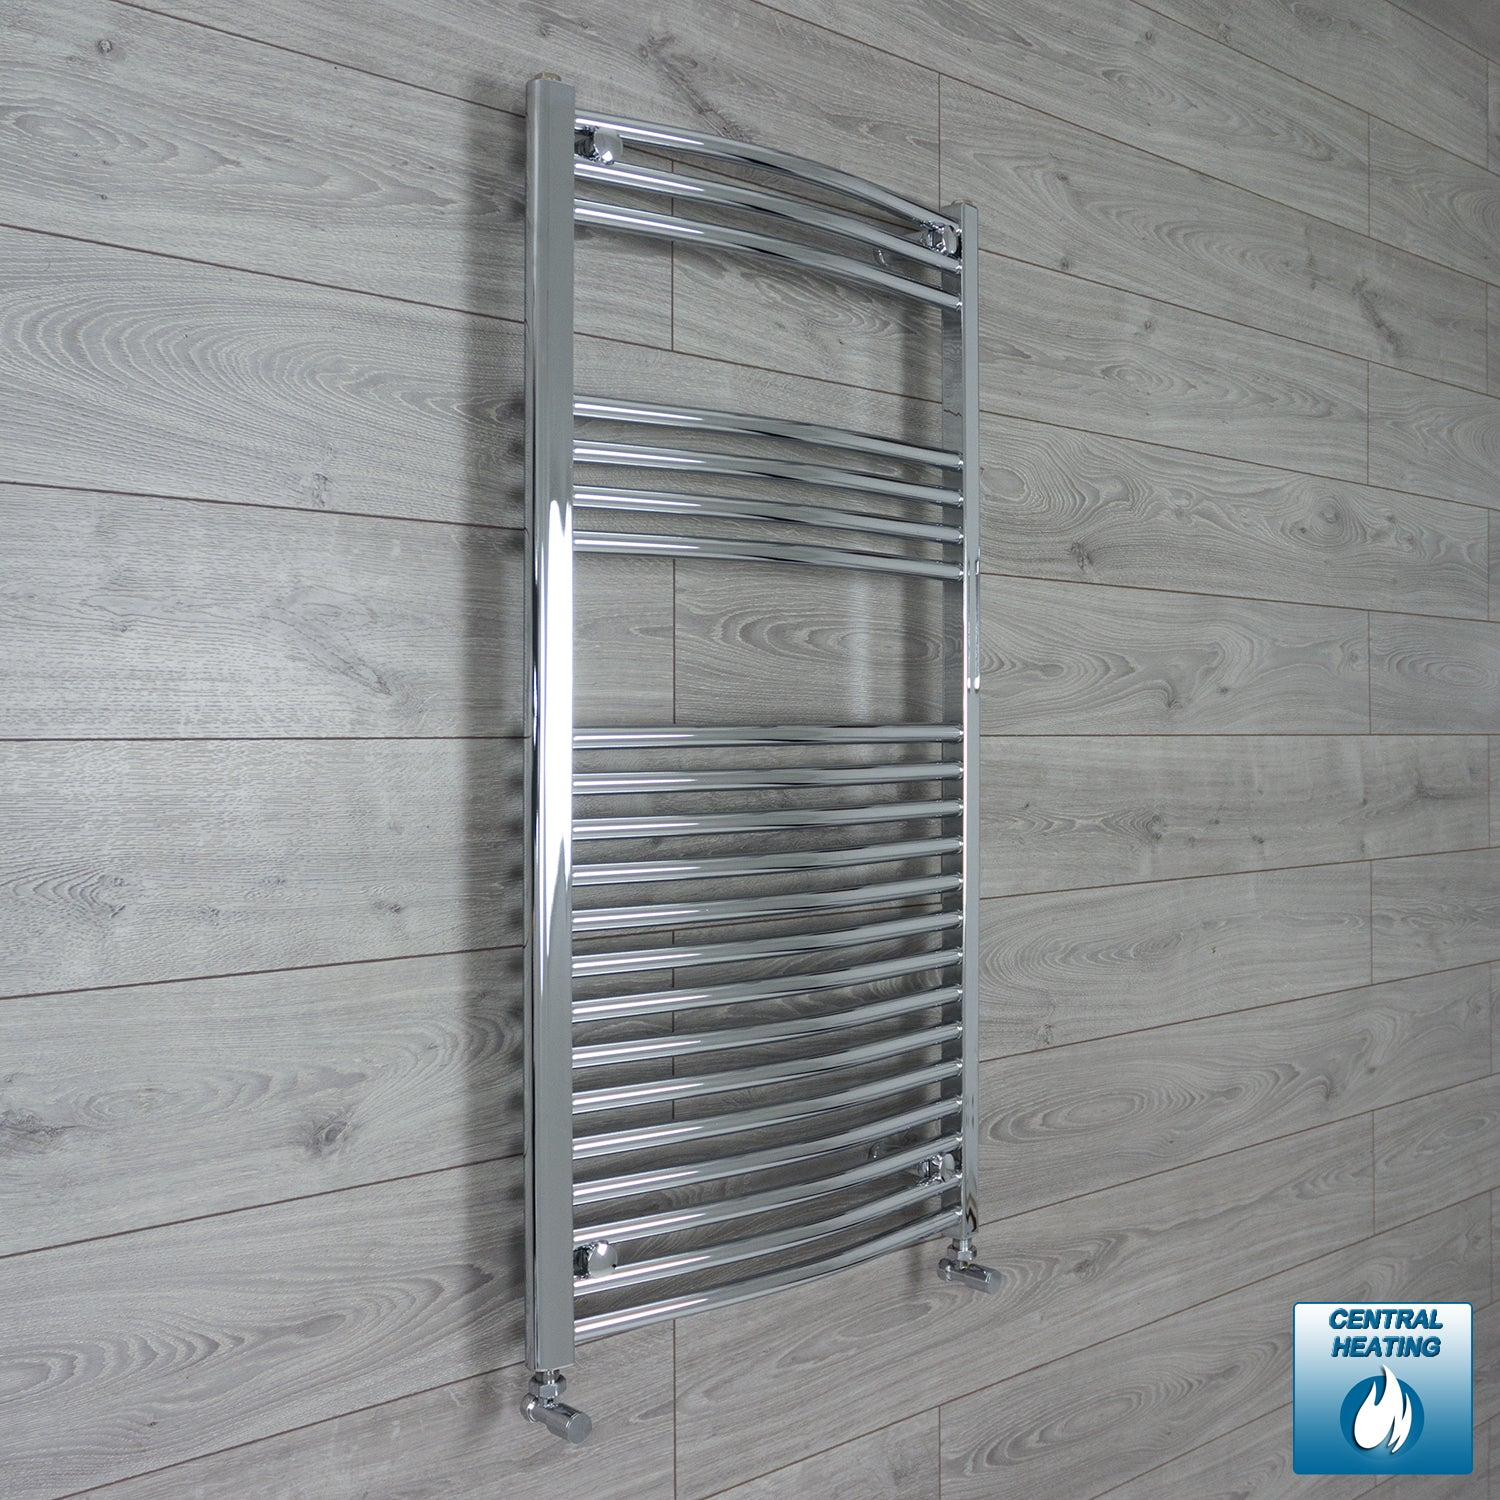 600mm x 1100mm High Curved Chrome Towel Rail Radiator With Angled Valve